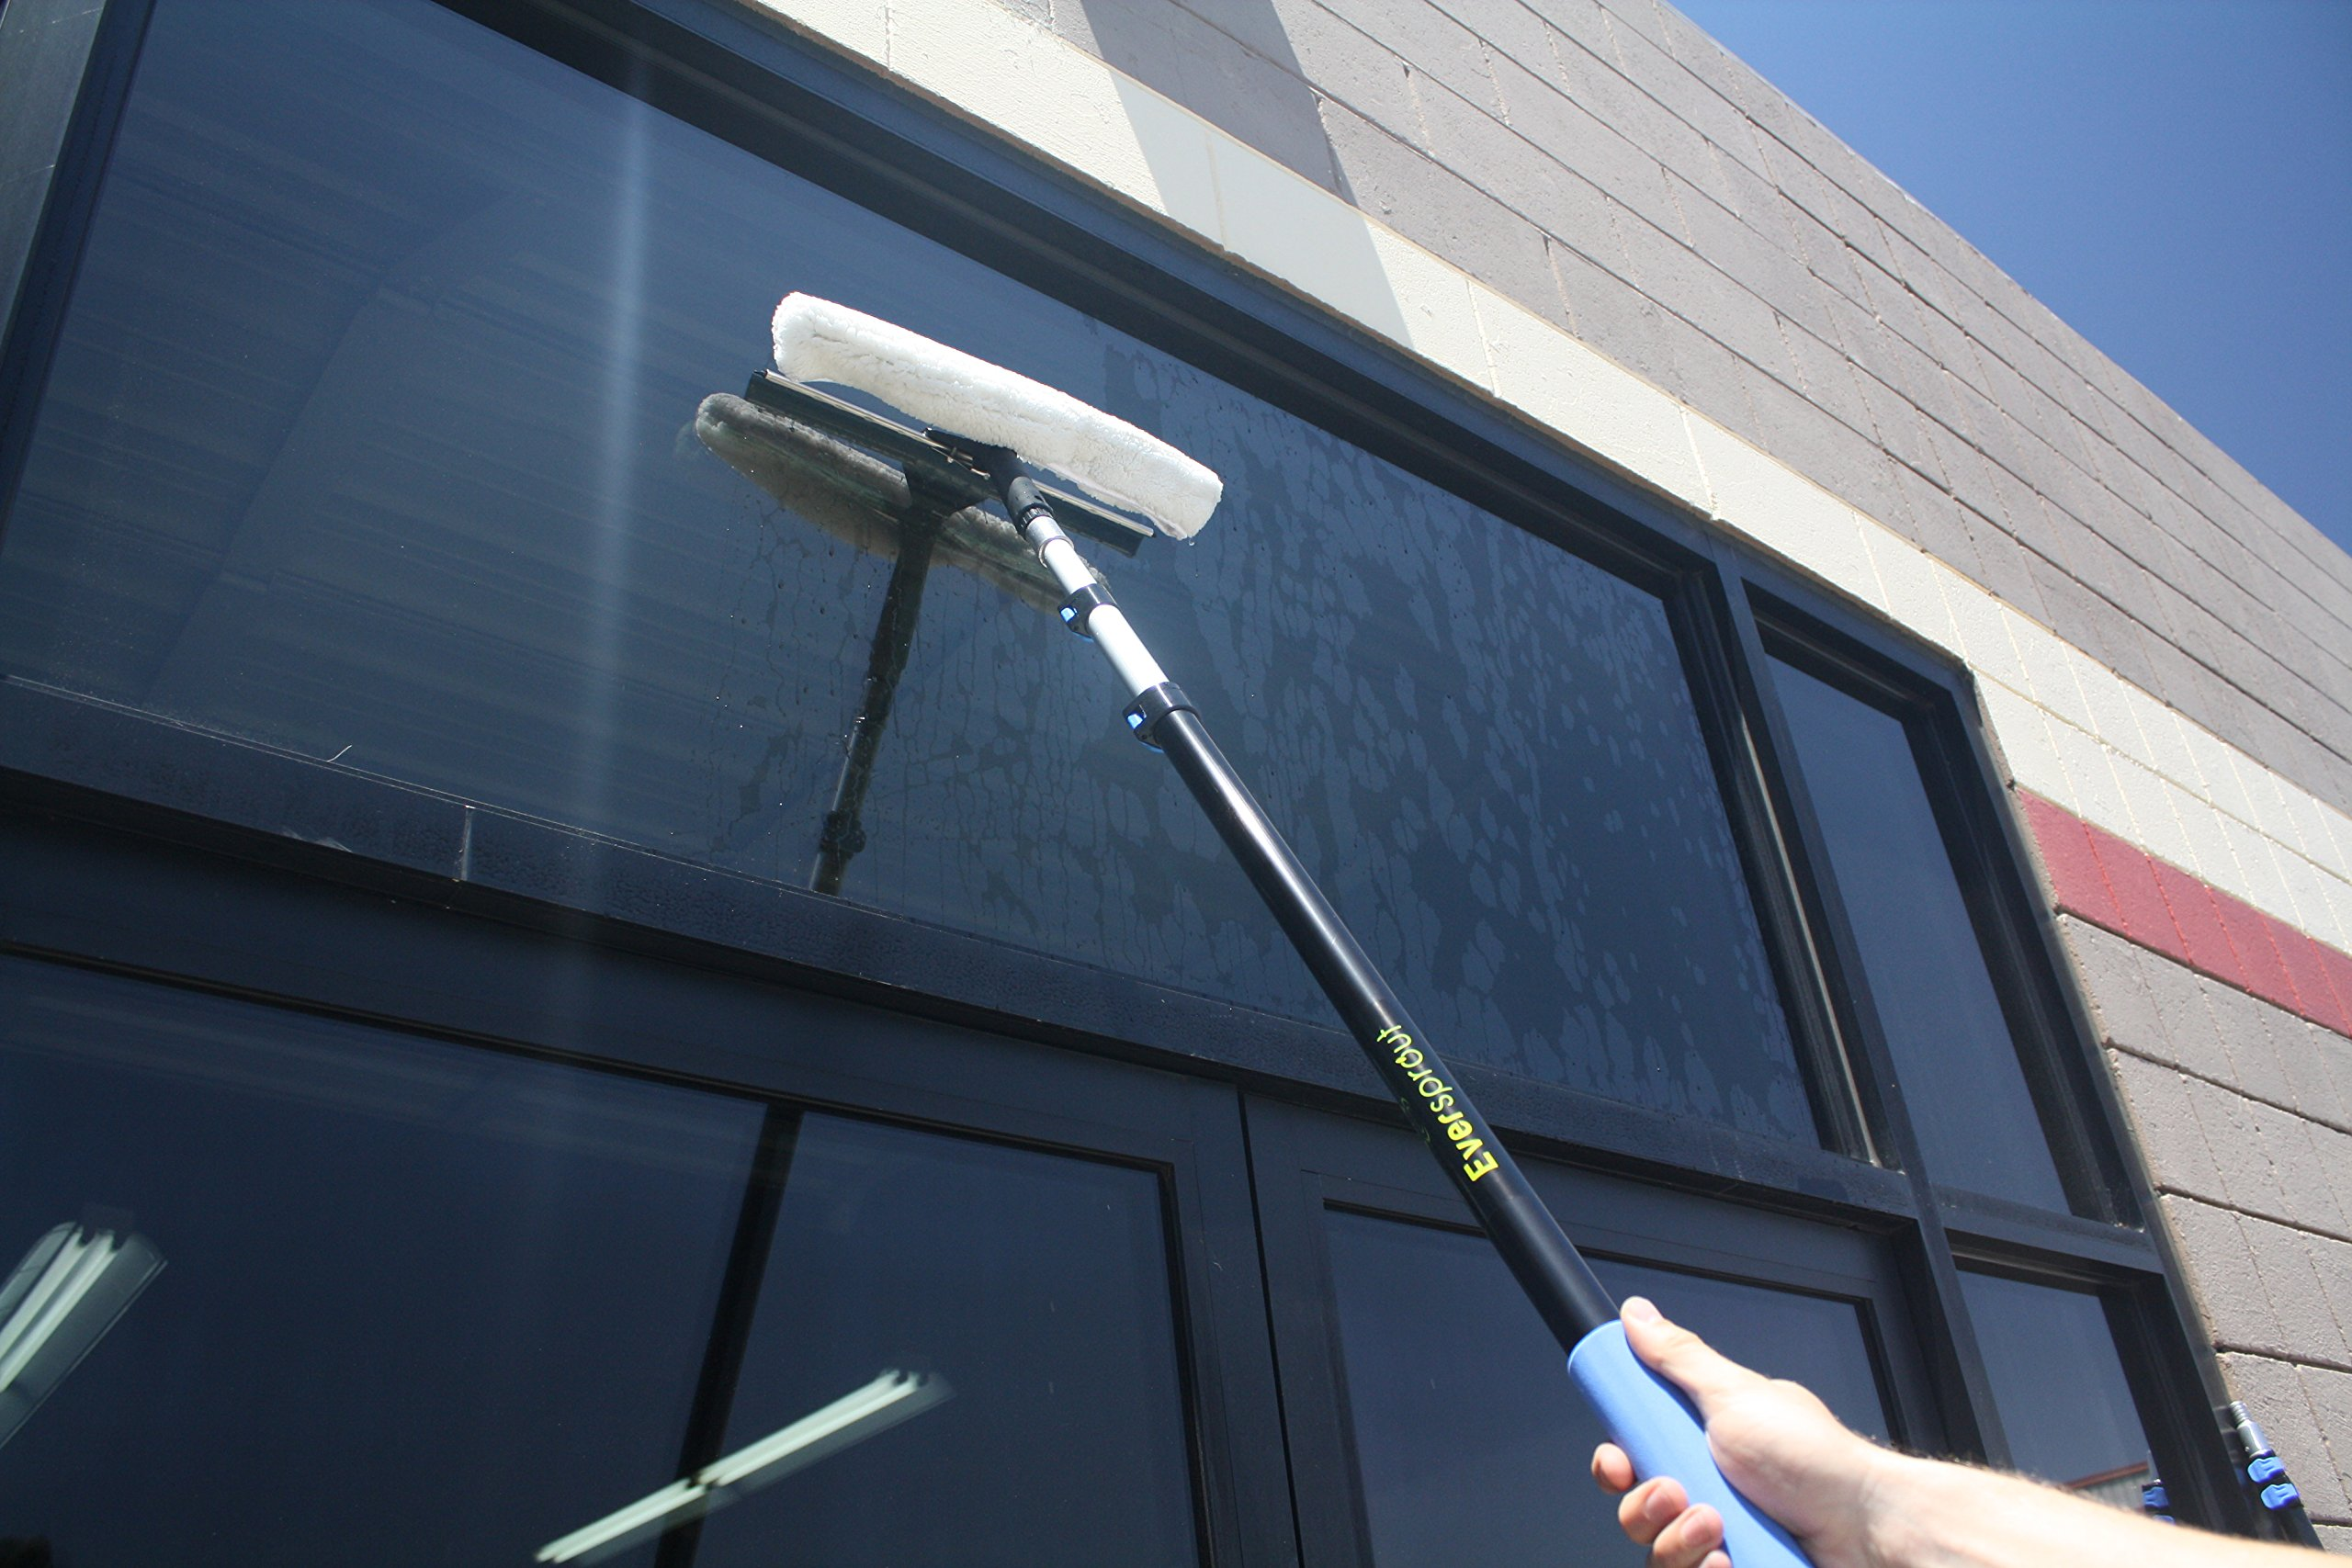 EVERSPROUT Pro-Series 7-to-20 Foot Squeegee Window Scrubber (25+ Ft. Reach) | 2-in-1 Window Cleaning Combo | Extra-Wide 16'' Squeegee with Light-Weight, Aluminum Extension Pole by Eversprout (Image #5)